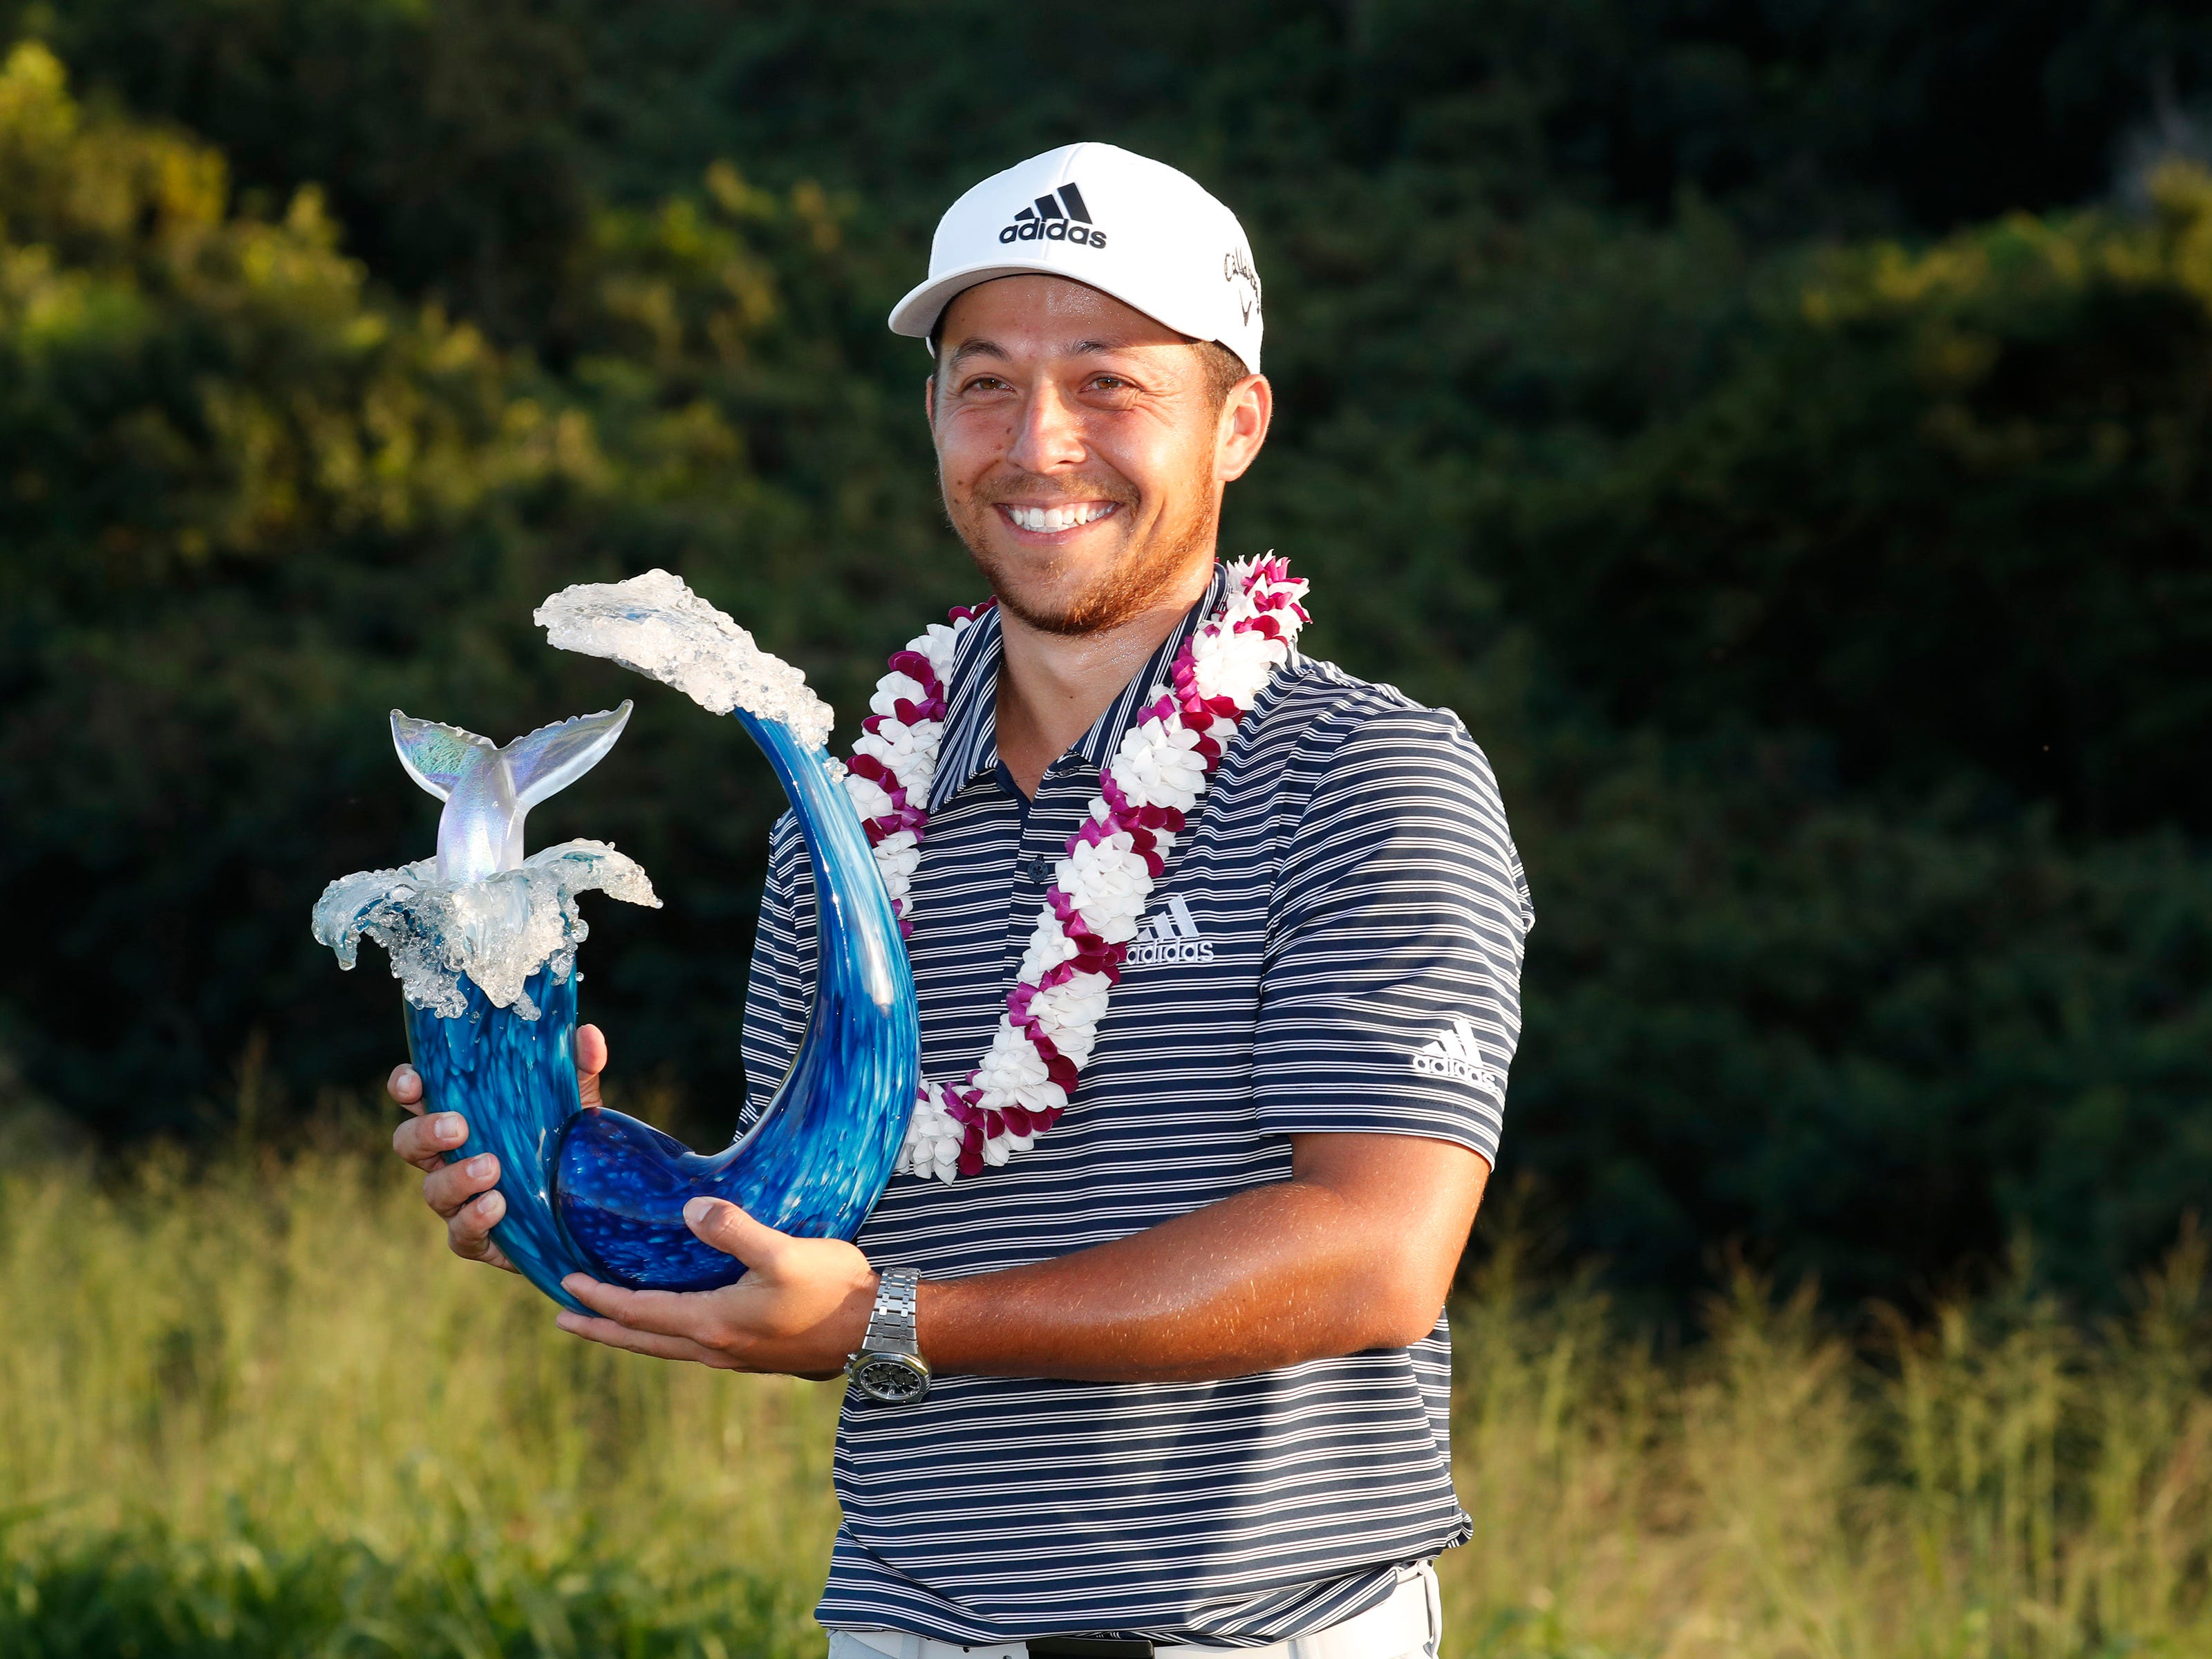 Jan. 6: Xander Schauffele poses with the trophy after winning the Sentry Tournament of Champions golf tournament at Kapalua Resort - The Plantation Course.